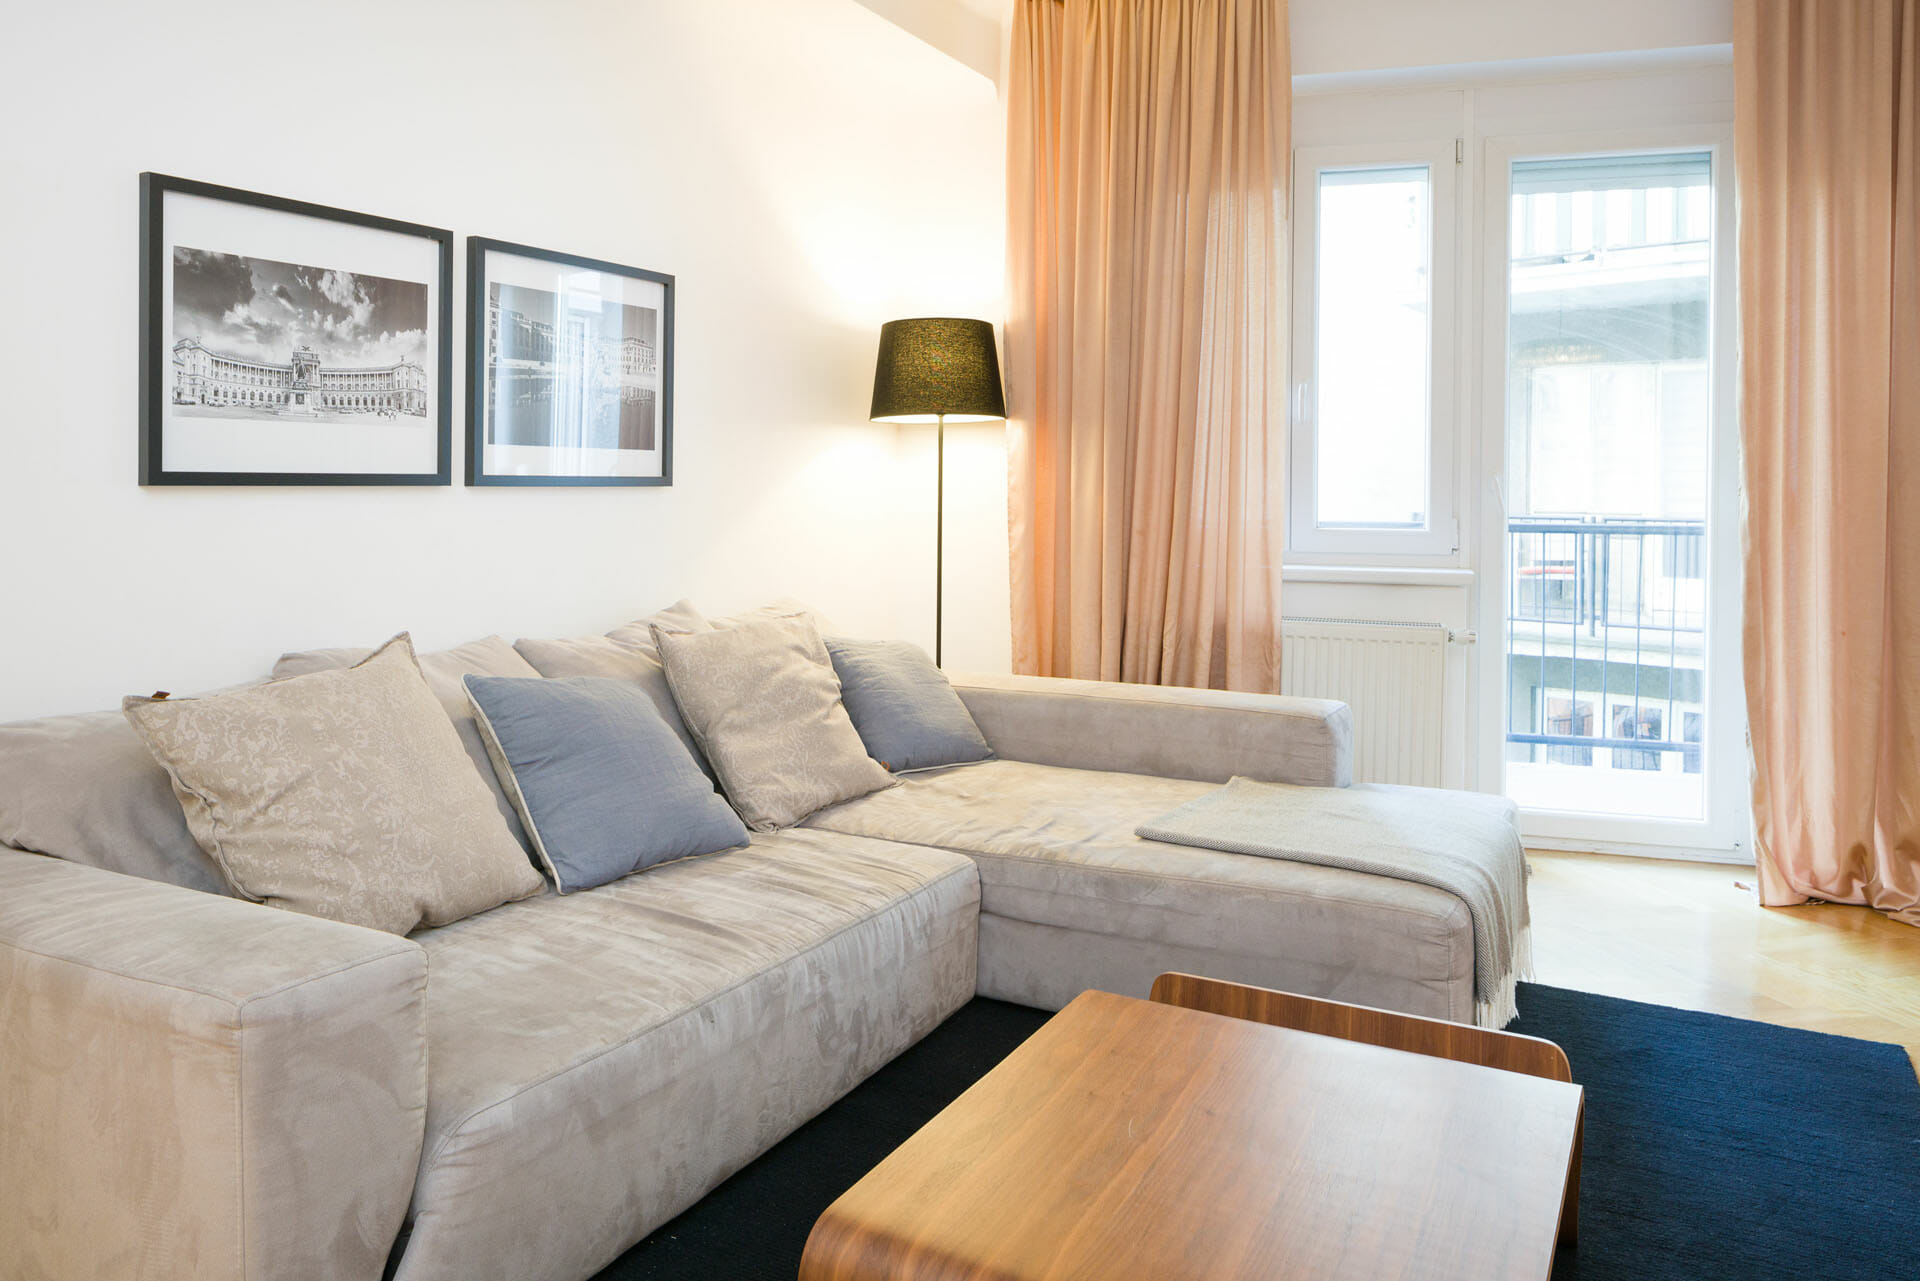 Prestige Apartments in Vienna Spacious Apartment.Apartments size in m²: 80 District: 1090 Alsergrund Bedroom: 2.